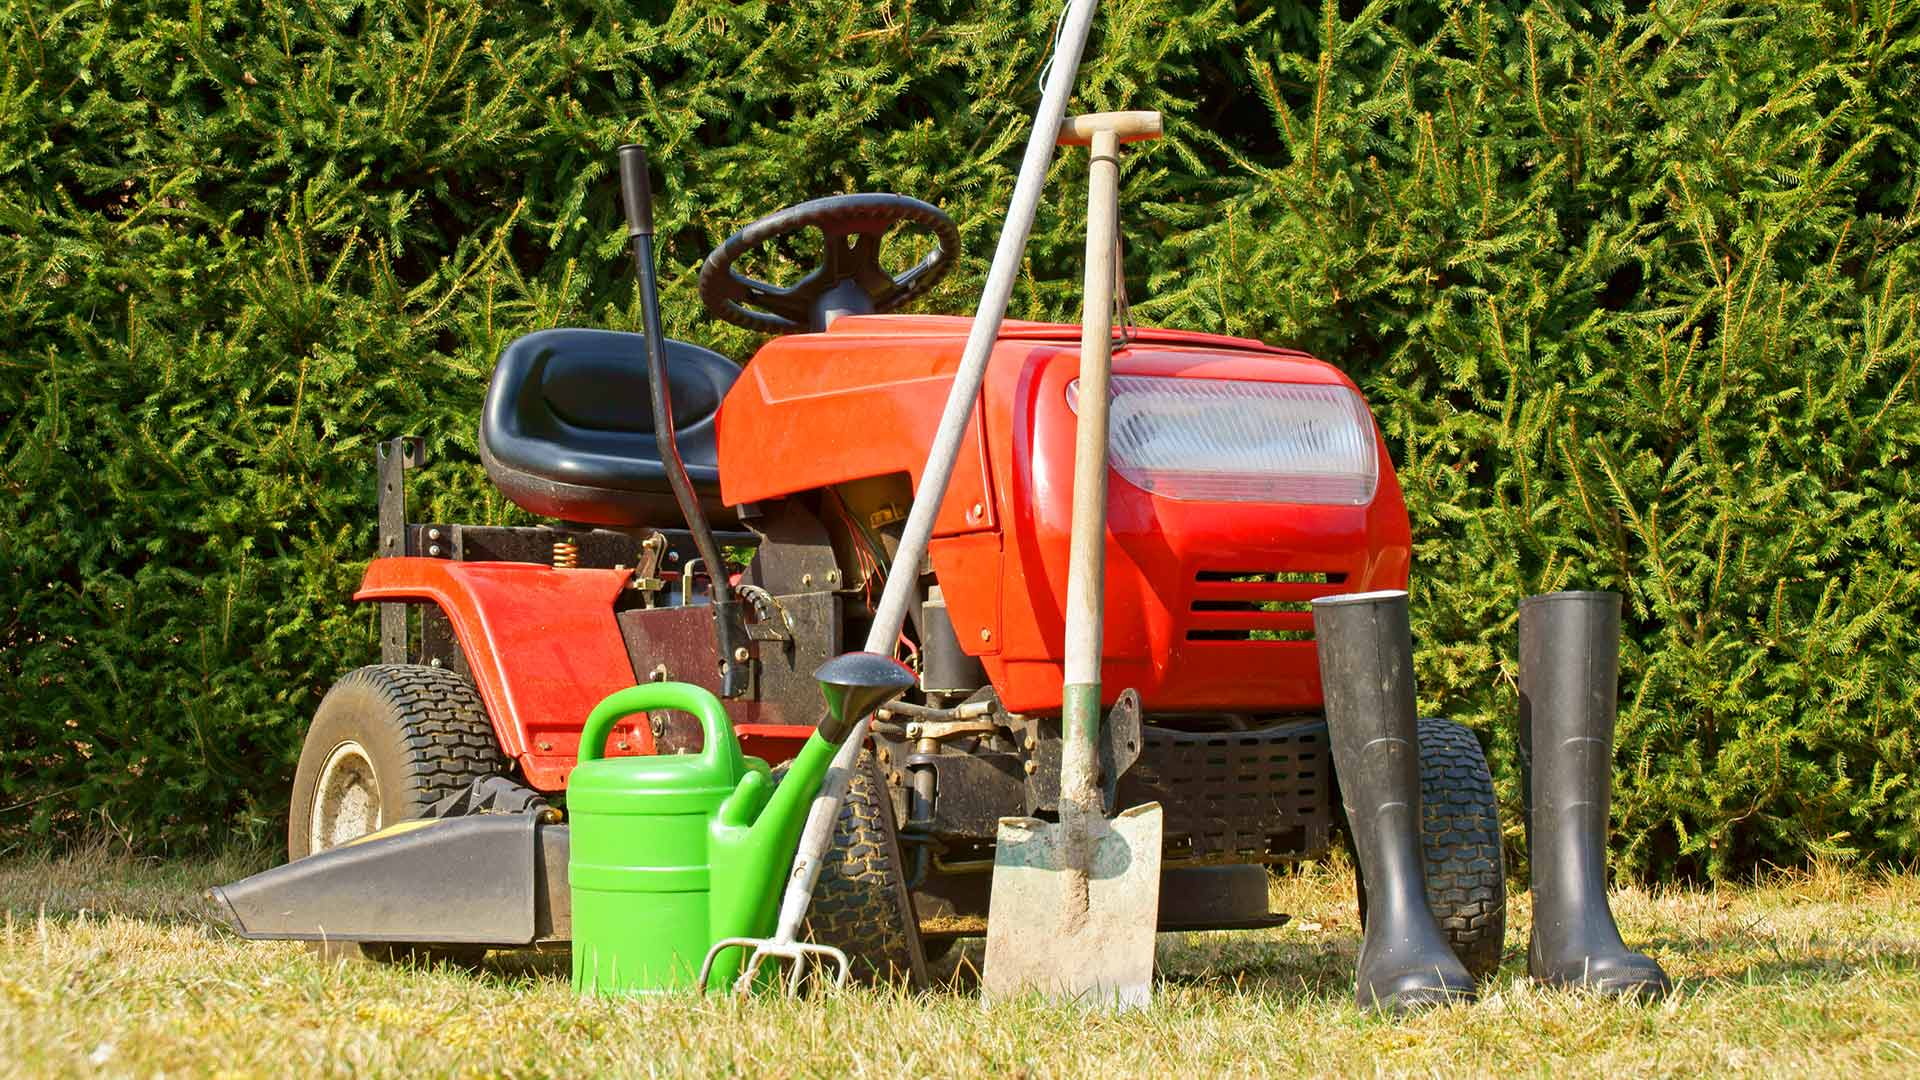 Riding lawn mower with gardening tools